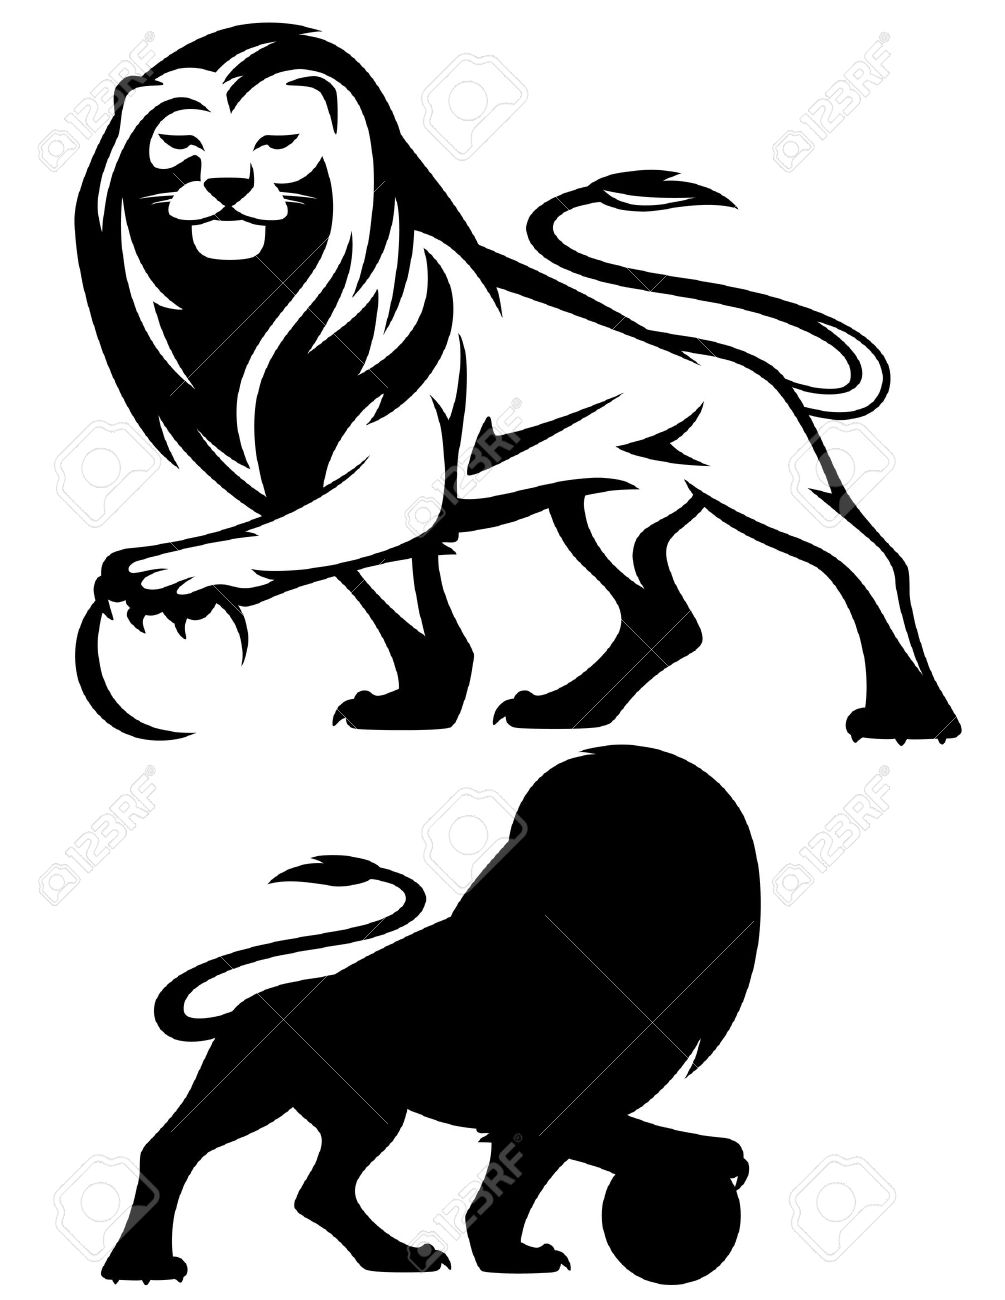 lion holding a ball - vector illustration - black and white outline and silhouette Stock Vector - 18302394